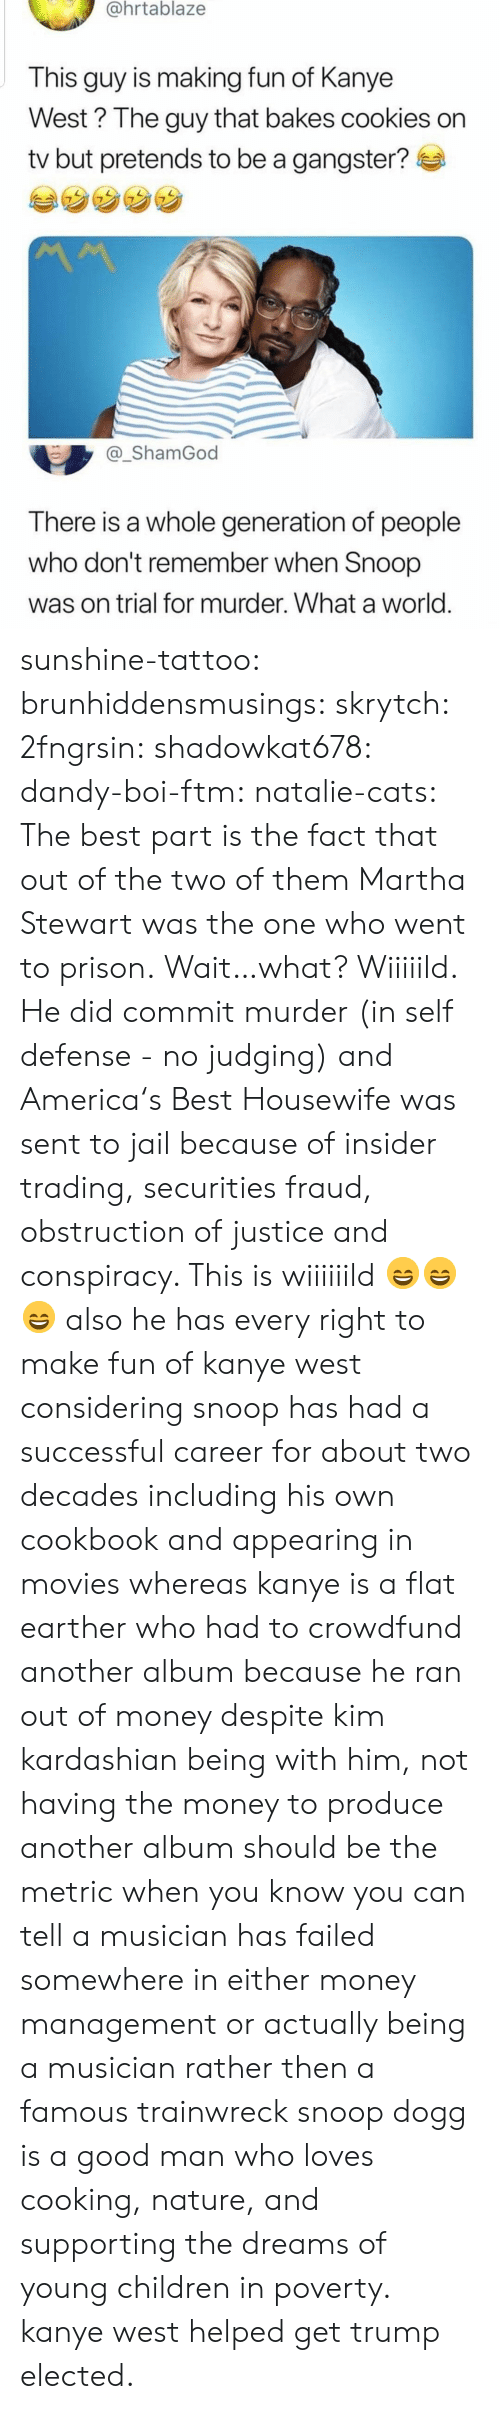 Justice: @hrtablaze  This guy is making fun of Kanye  West? The guy that bakes cookies on  tv but pretends to be a gangster?  _ShamGod  There is a whole generation of people  who don't remember when Snoop  was on trial for murder. What a world sunshine-tattoo: brunhiddensmusings:  skrytch:  2fngrsin:  shadowkat678:  dandy-boi-ftm:   natalie-cats:   The best part is the fact that out of the two of them Martha Stewart was the one who went to prison.   Wait…what?   Wiiiiild. He did commit murder (in self defense - no judging) and America's Best Housewife was sent to jail because of insider trading, securities fraud, obstruction of justice and conspiracy. This is wiiiiiild 😄😄😄    also he has every right to make fun of kanye west considering snoop has had a successful career for about two decades including his own cookbook and appearing in movies whereas kanye is a flat earther who had to crowdfund another album because he ran out of money despite kim kardashian being with him, not having the money to produce another album should be the metric when you know you can tell a musician has failed somewhere in either money management or actually being a musician rather then a famous trainwreck   snoop dogg is a good man who loves cooking, nature, and supporting the dreams of young children in poverty. kanye west helped get trump elected.